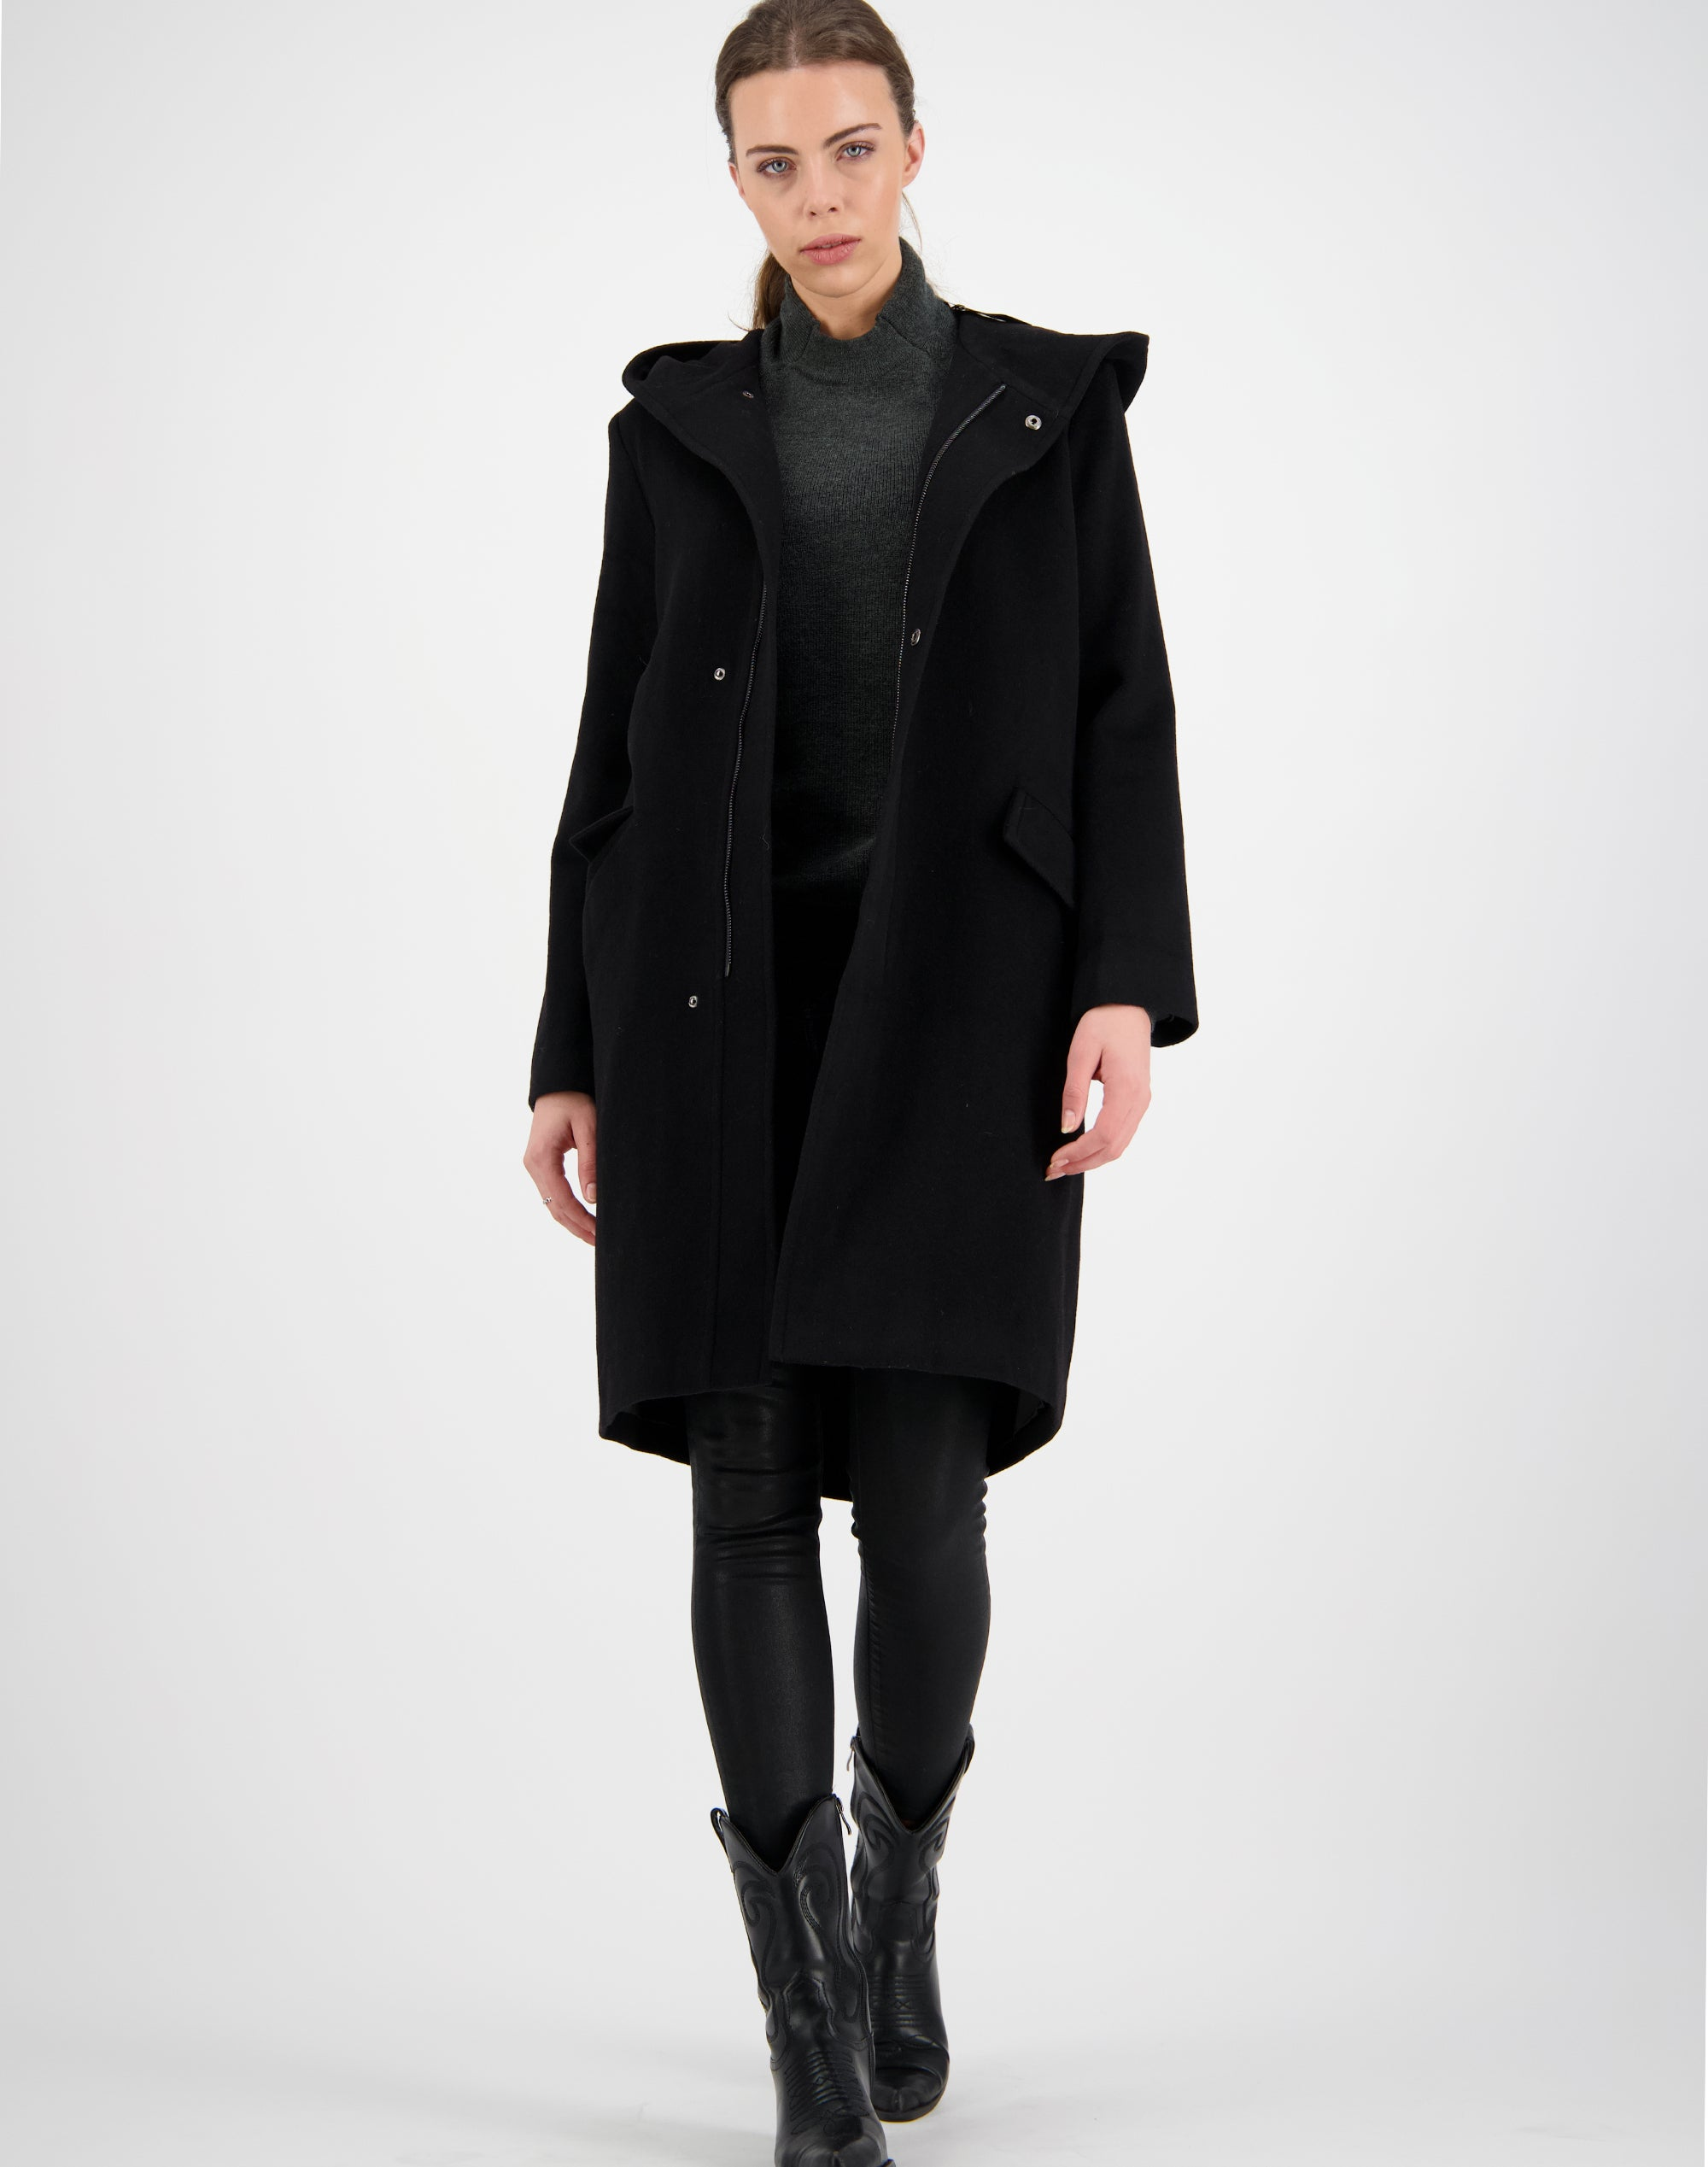 Take 2 Hooded Coat